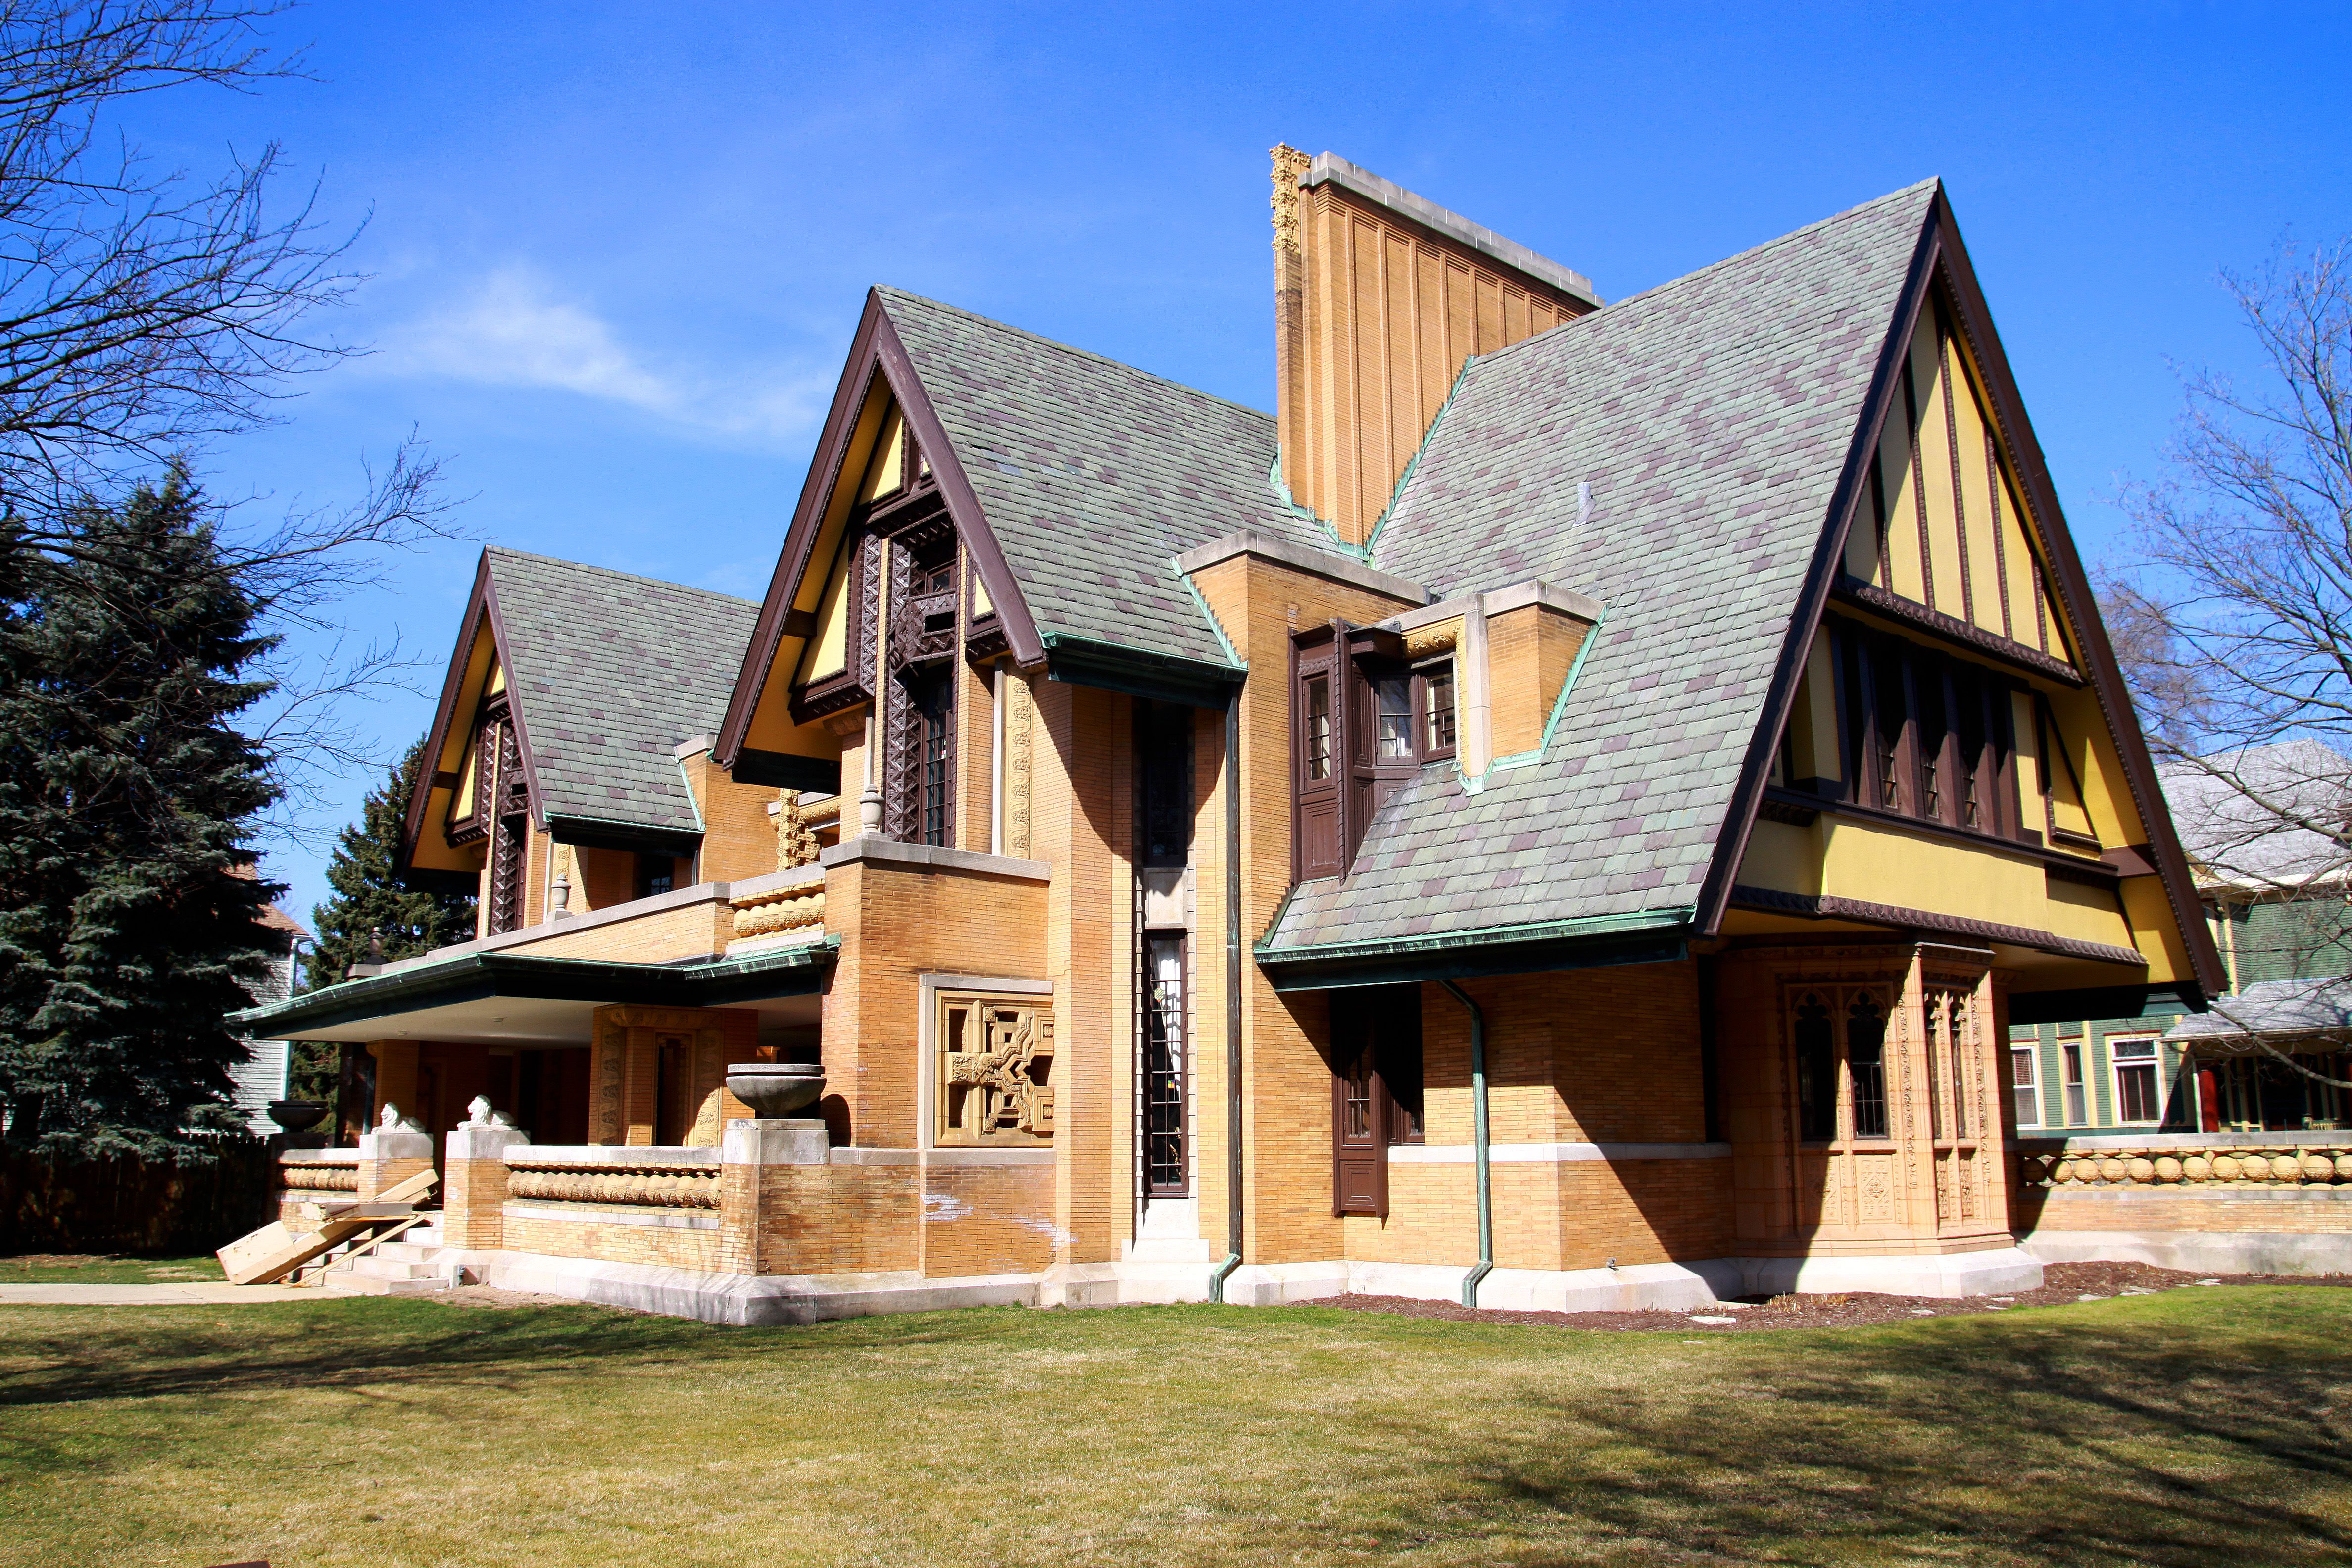 Frank Lloyd Wright Buildings - A Complete Listing